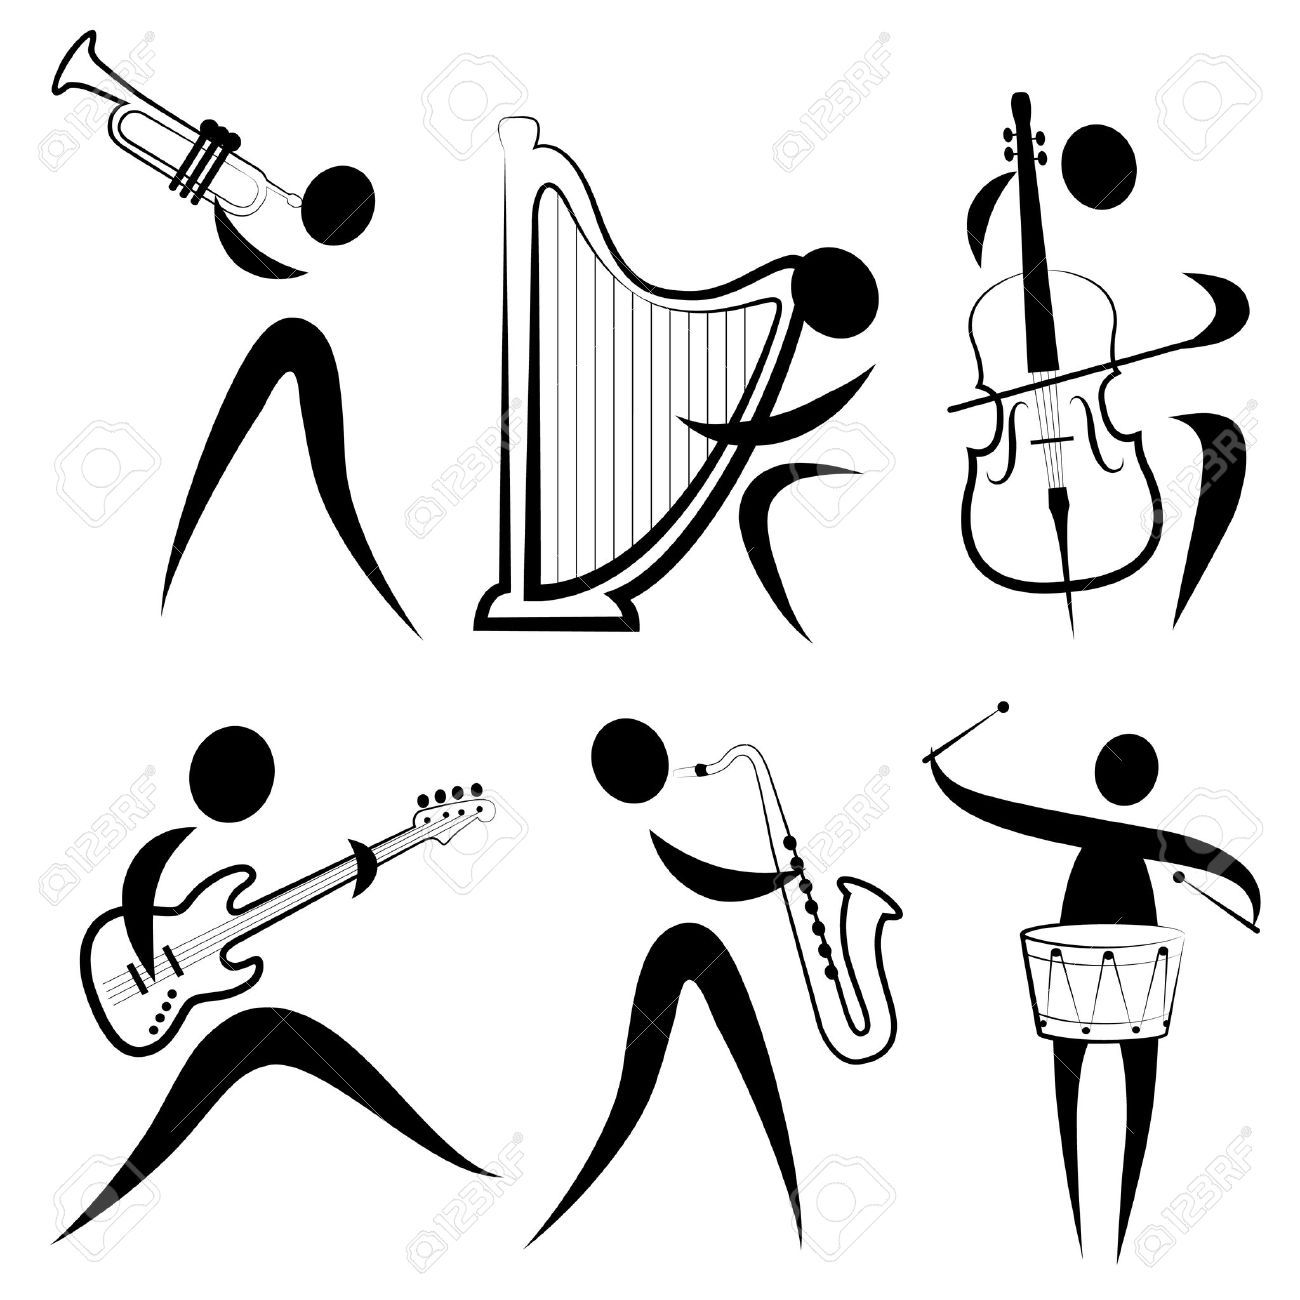 Image from httppreviews123rfimagesjackrustjackrust1102 find this pin and more on drawing musician symbol vector buycottarizona Gallery